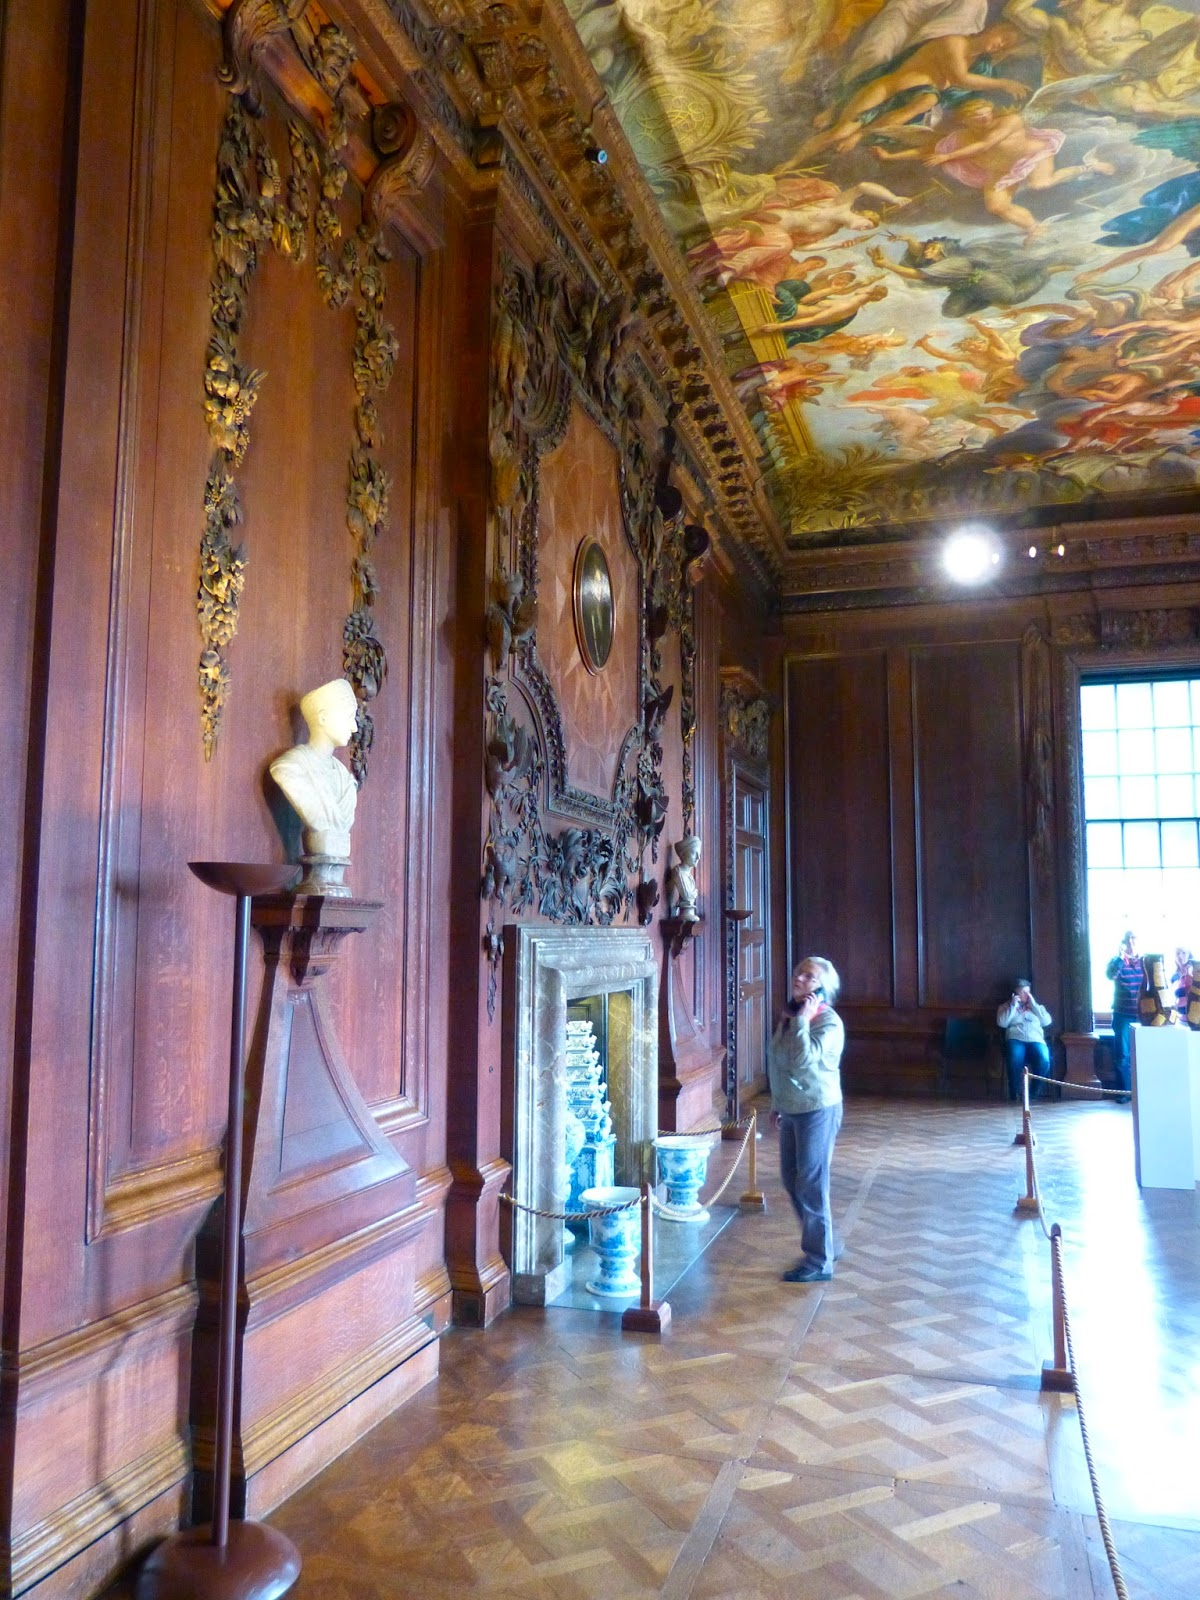 The Great Chamber, Chatsworth